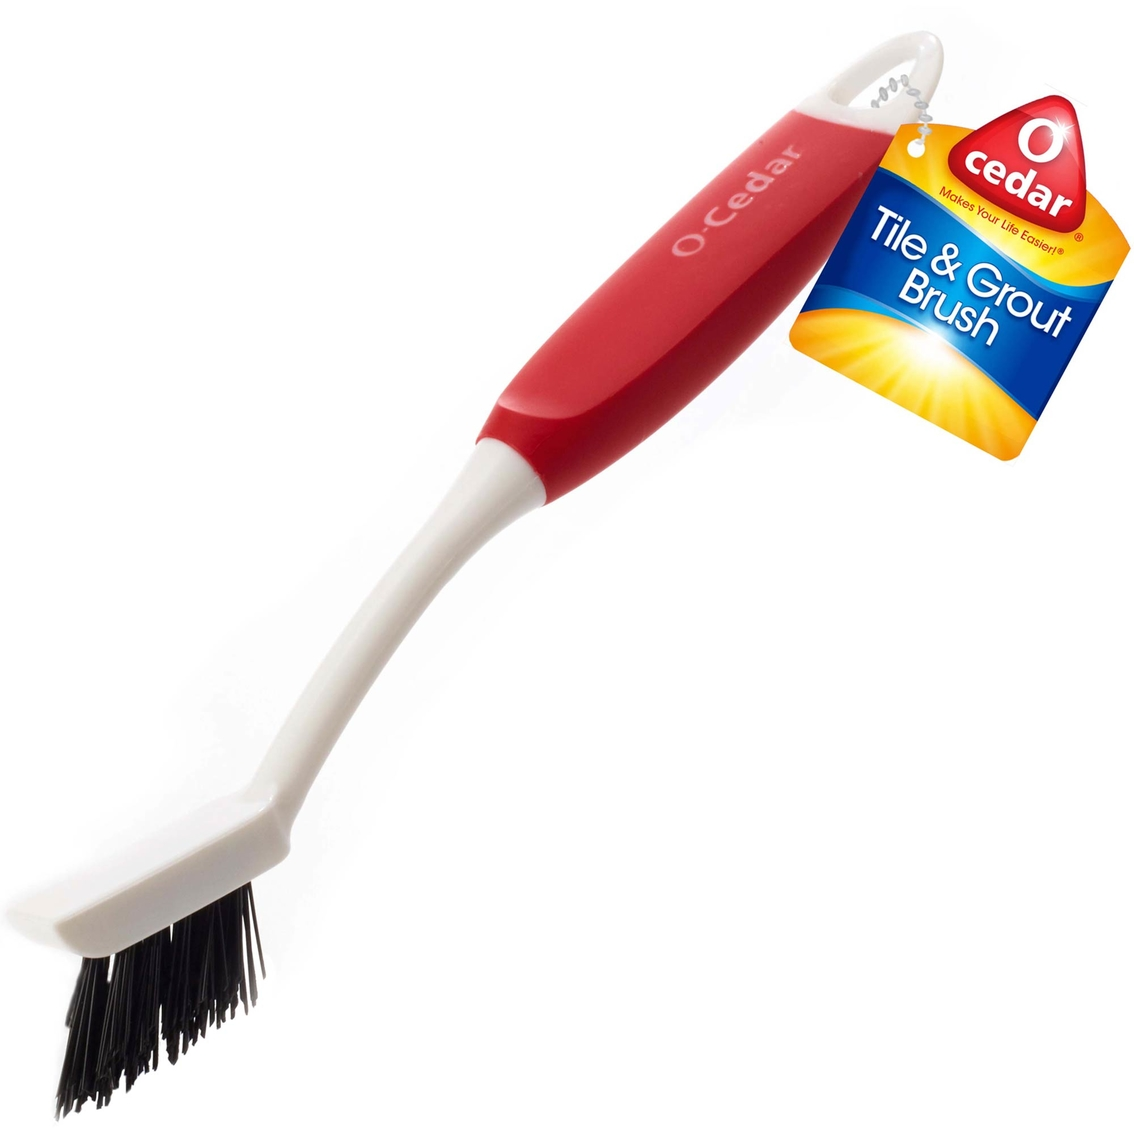 O Cedar Tile Grout Brush Cleaning Tools Household Shop The Exchange